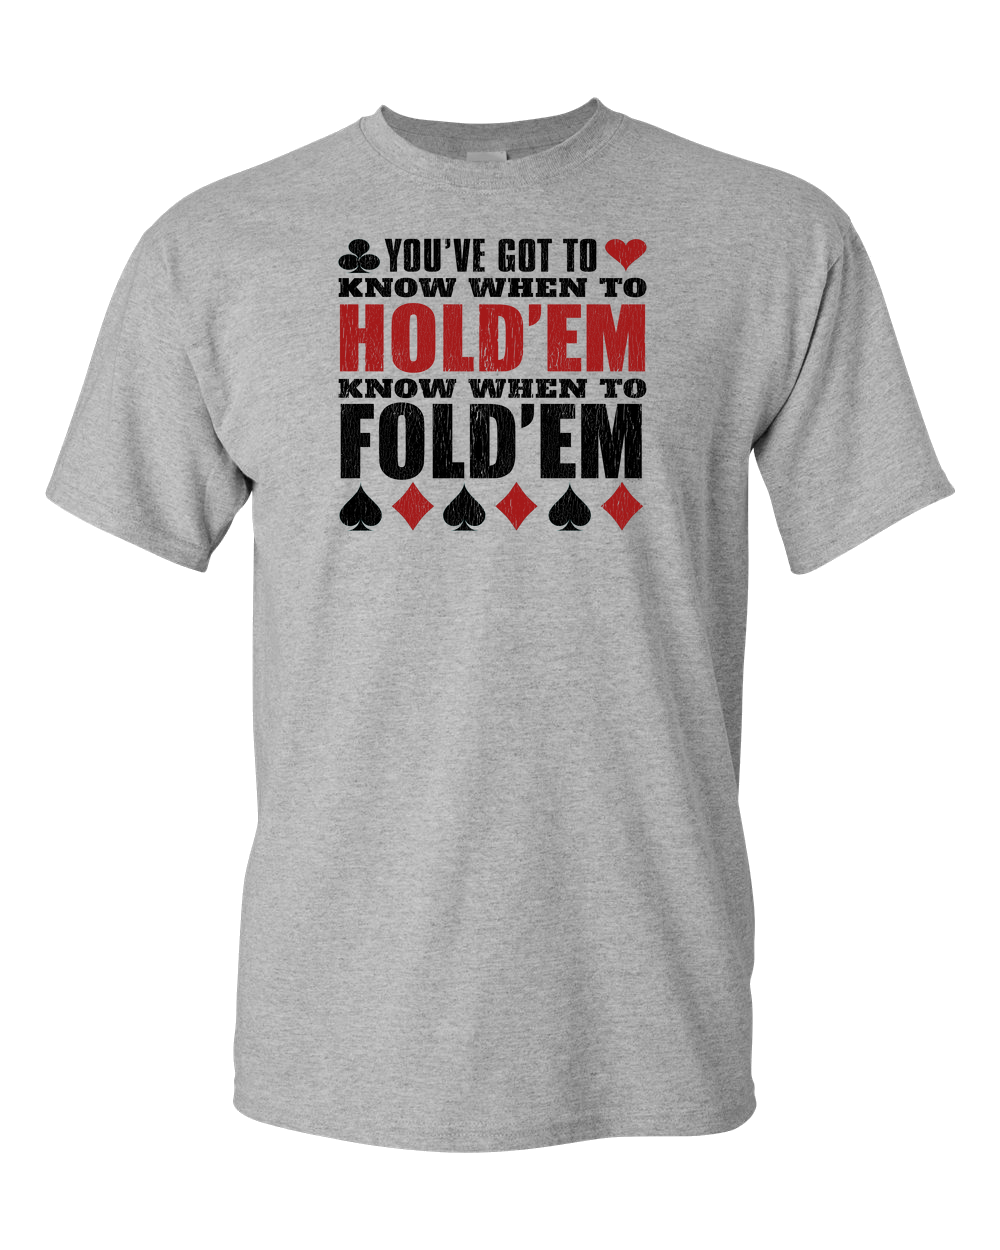 You Got To Know When To Hold'em And When To Fold'em Adult Unisex T-Shirt